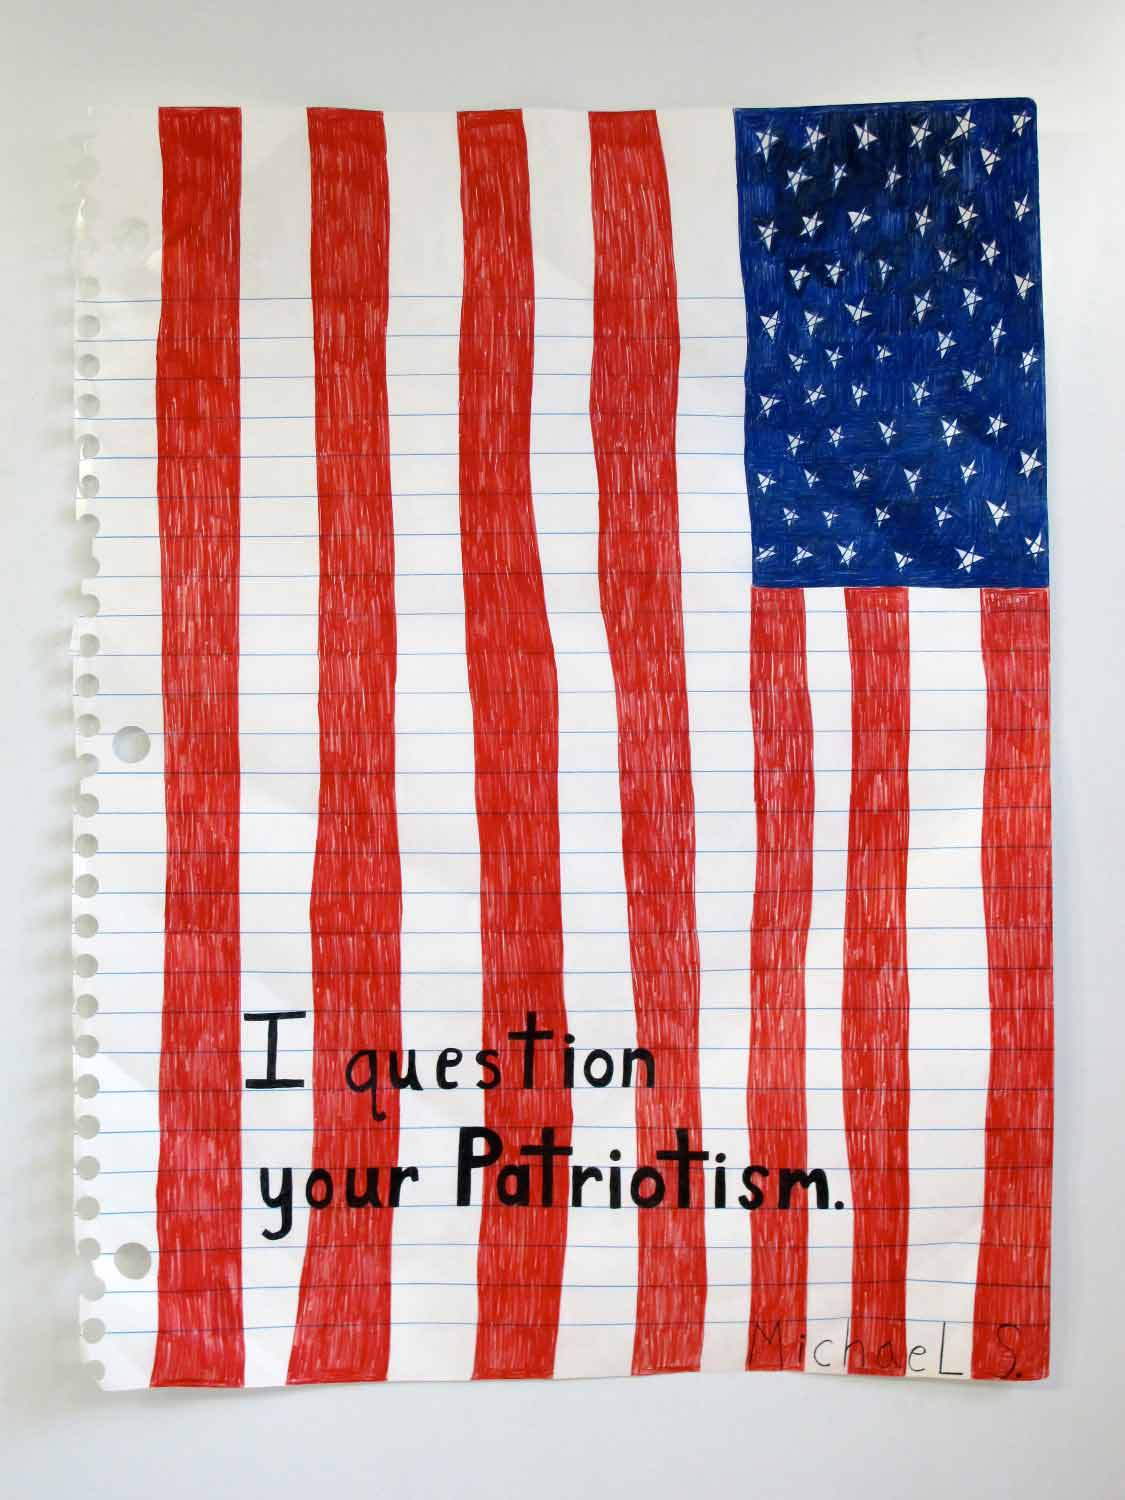 I-Question-Your-Patriotism-(high-res)